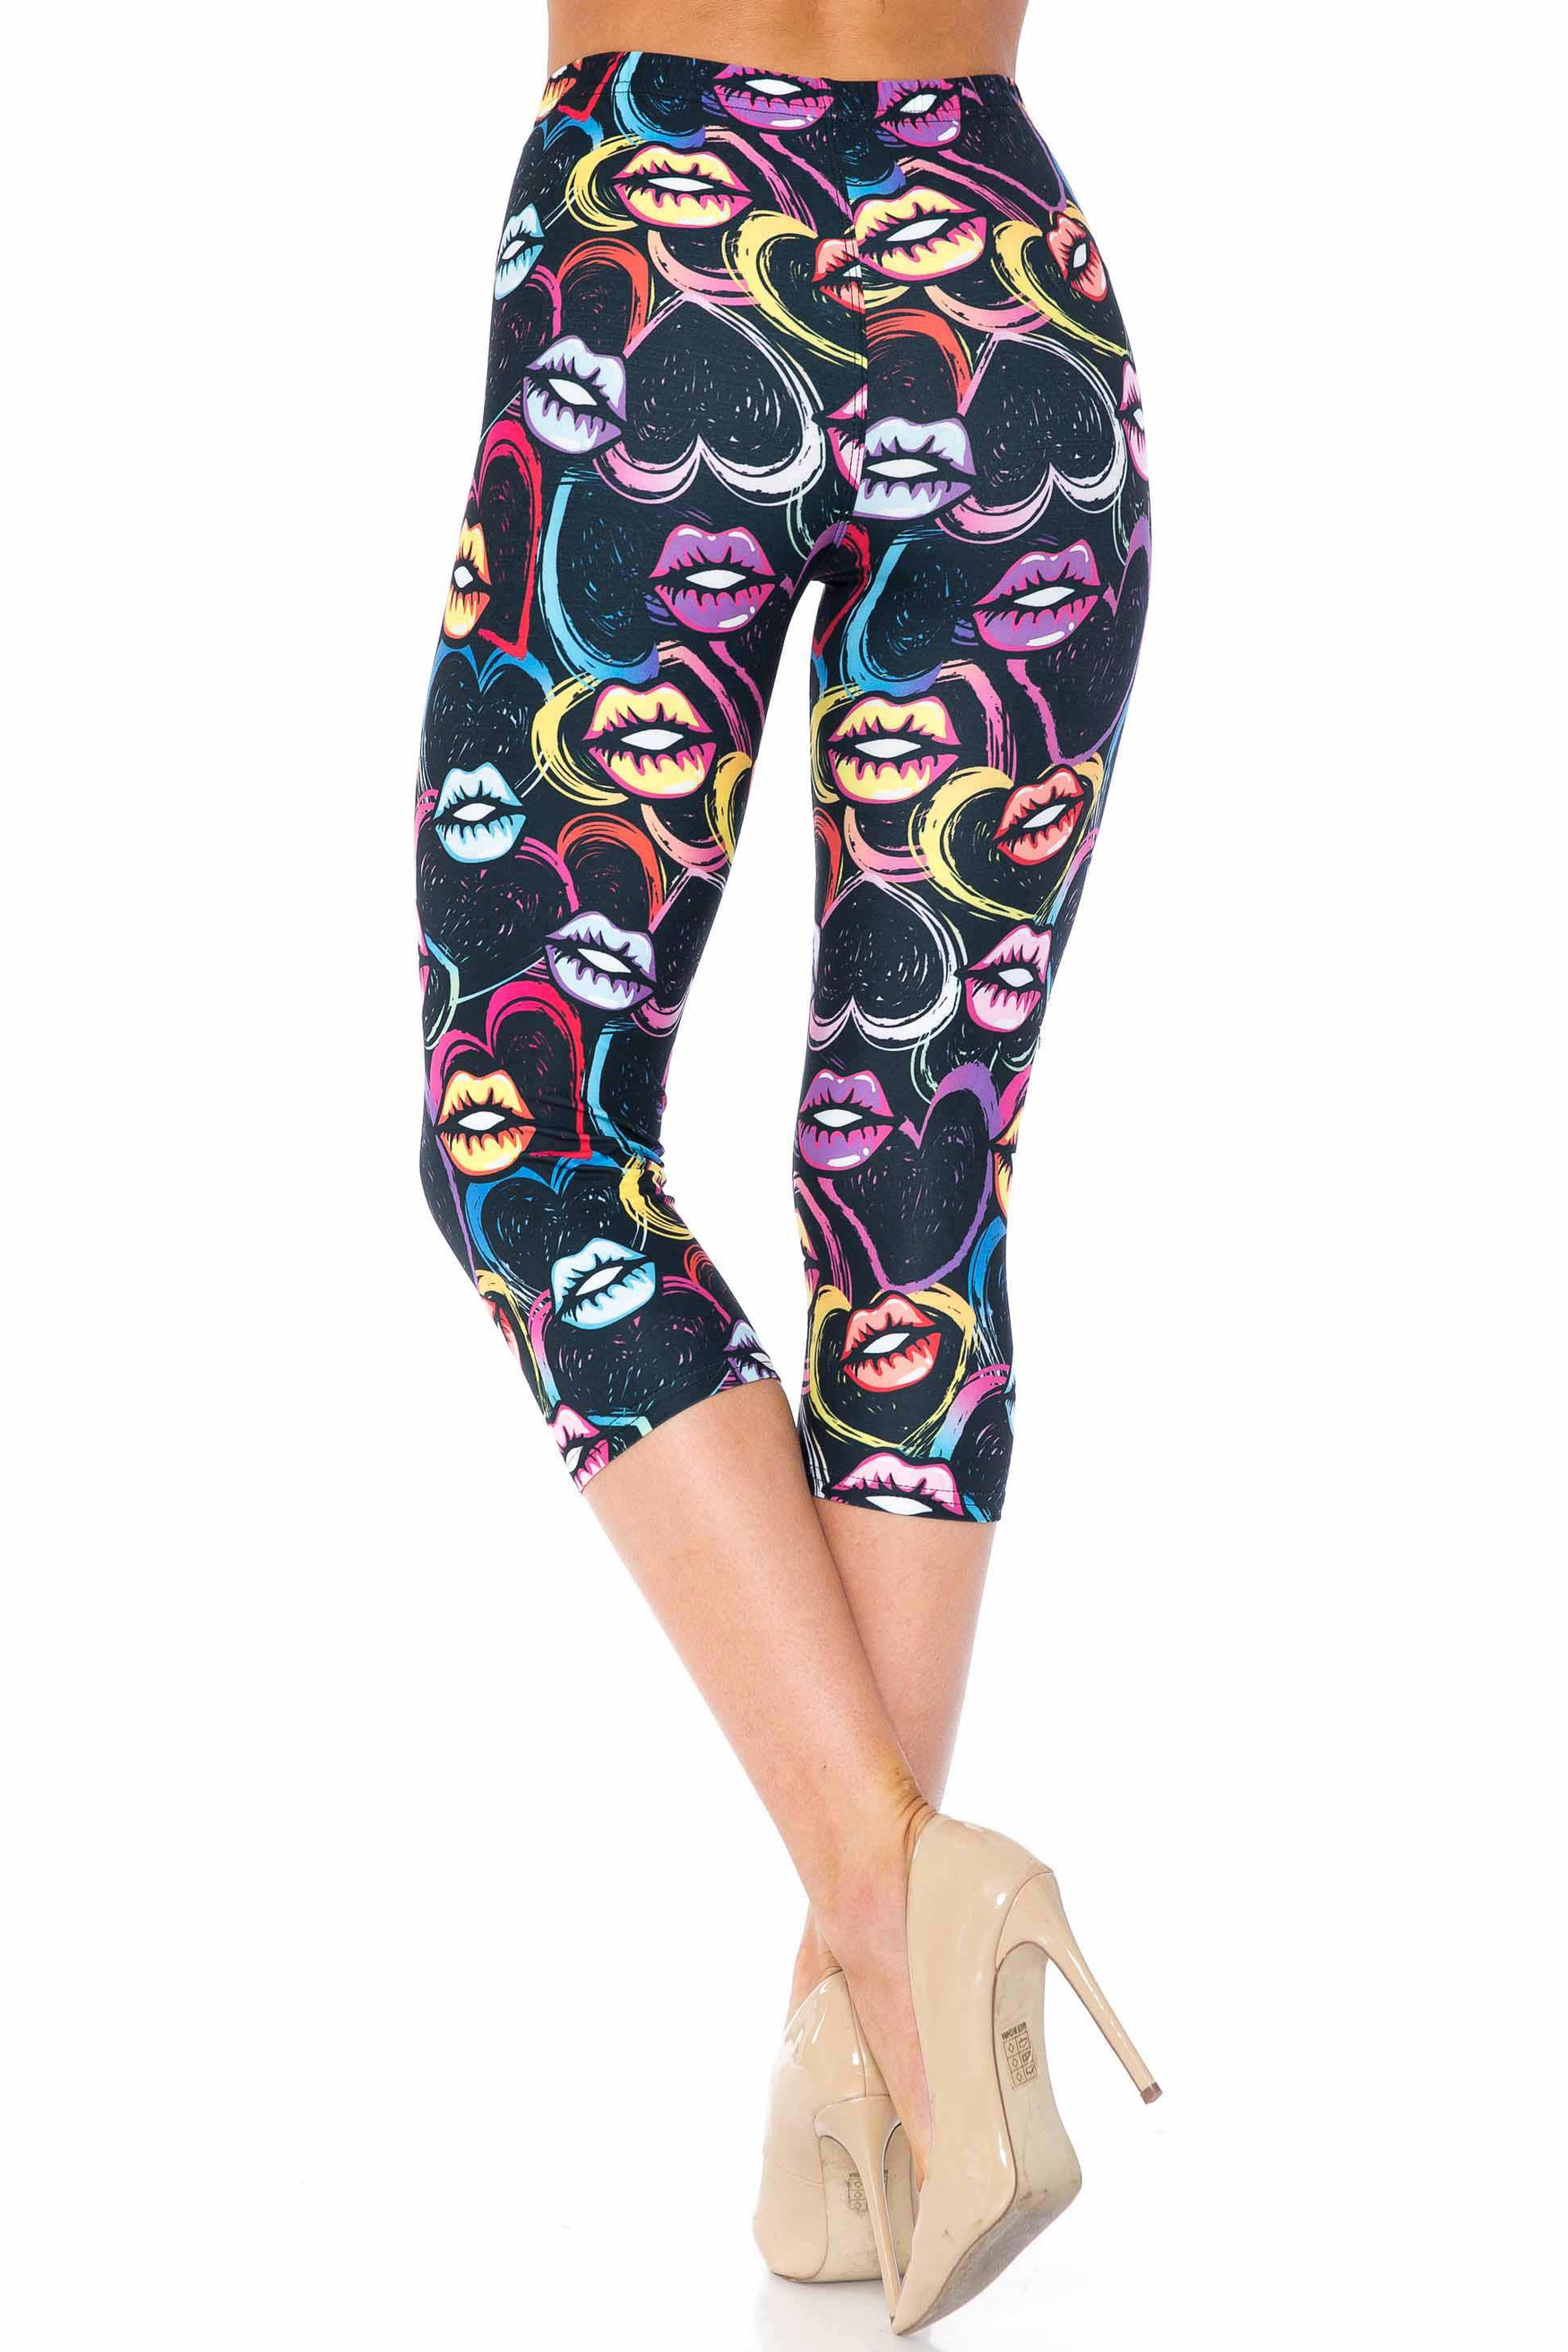 Creamy Soft Colorful Lips and Hearts Extra Plus Size Capris - USA Fashion™